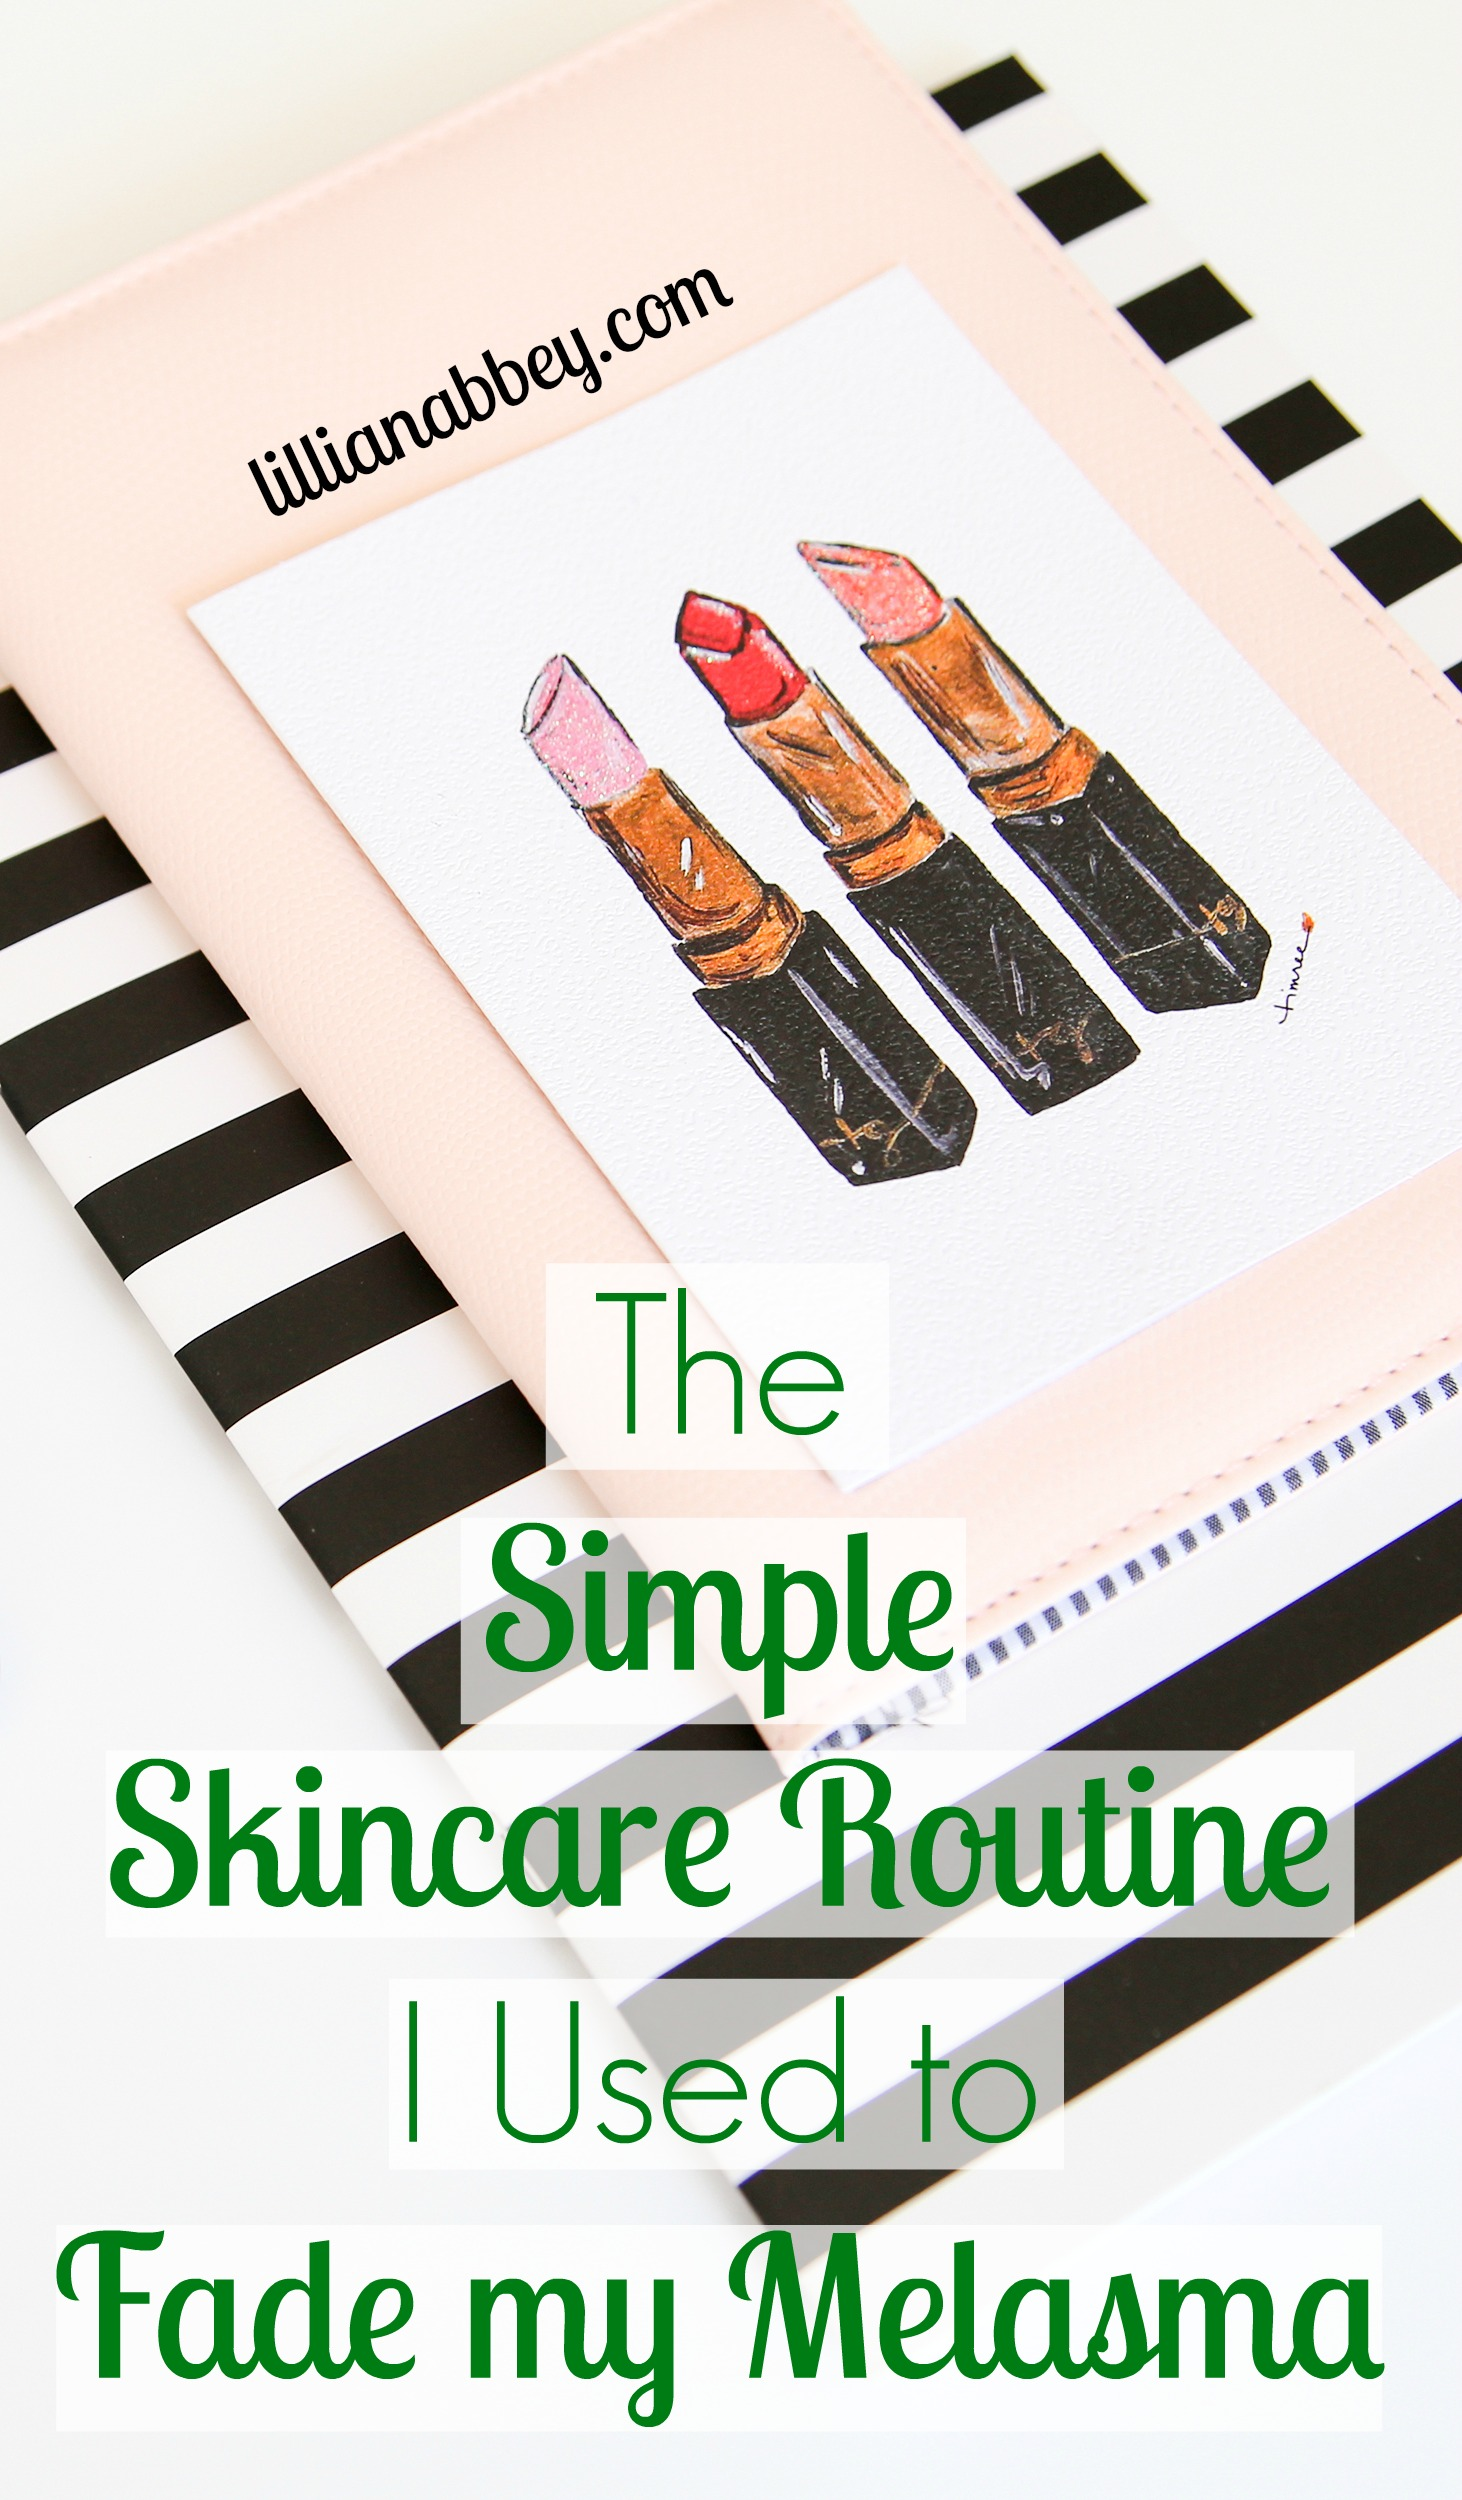 The Simple Skincare Routine I Used to Fade my Melasma